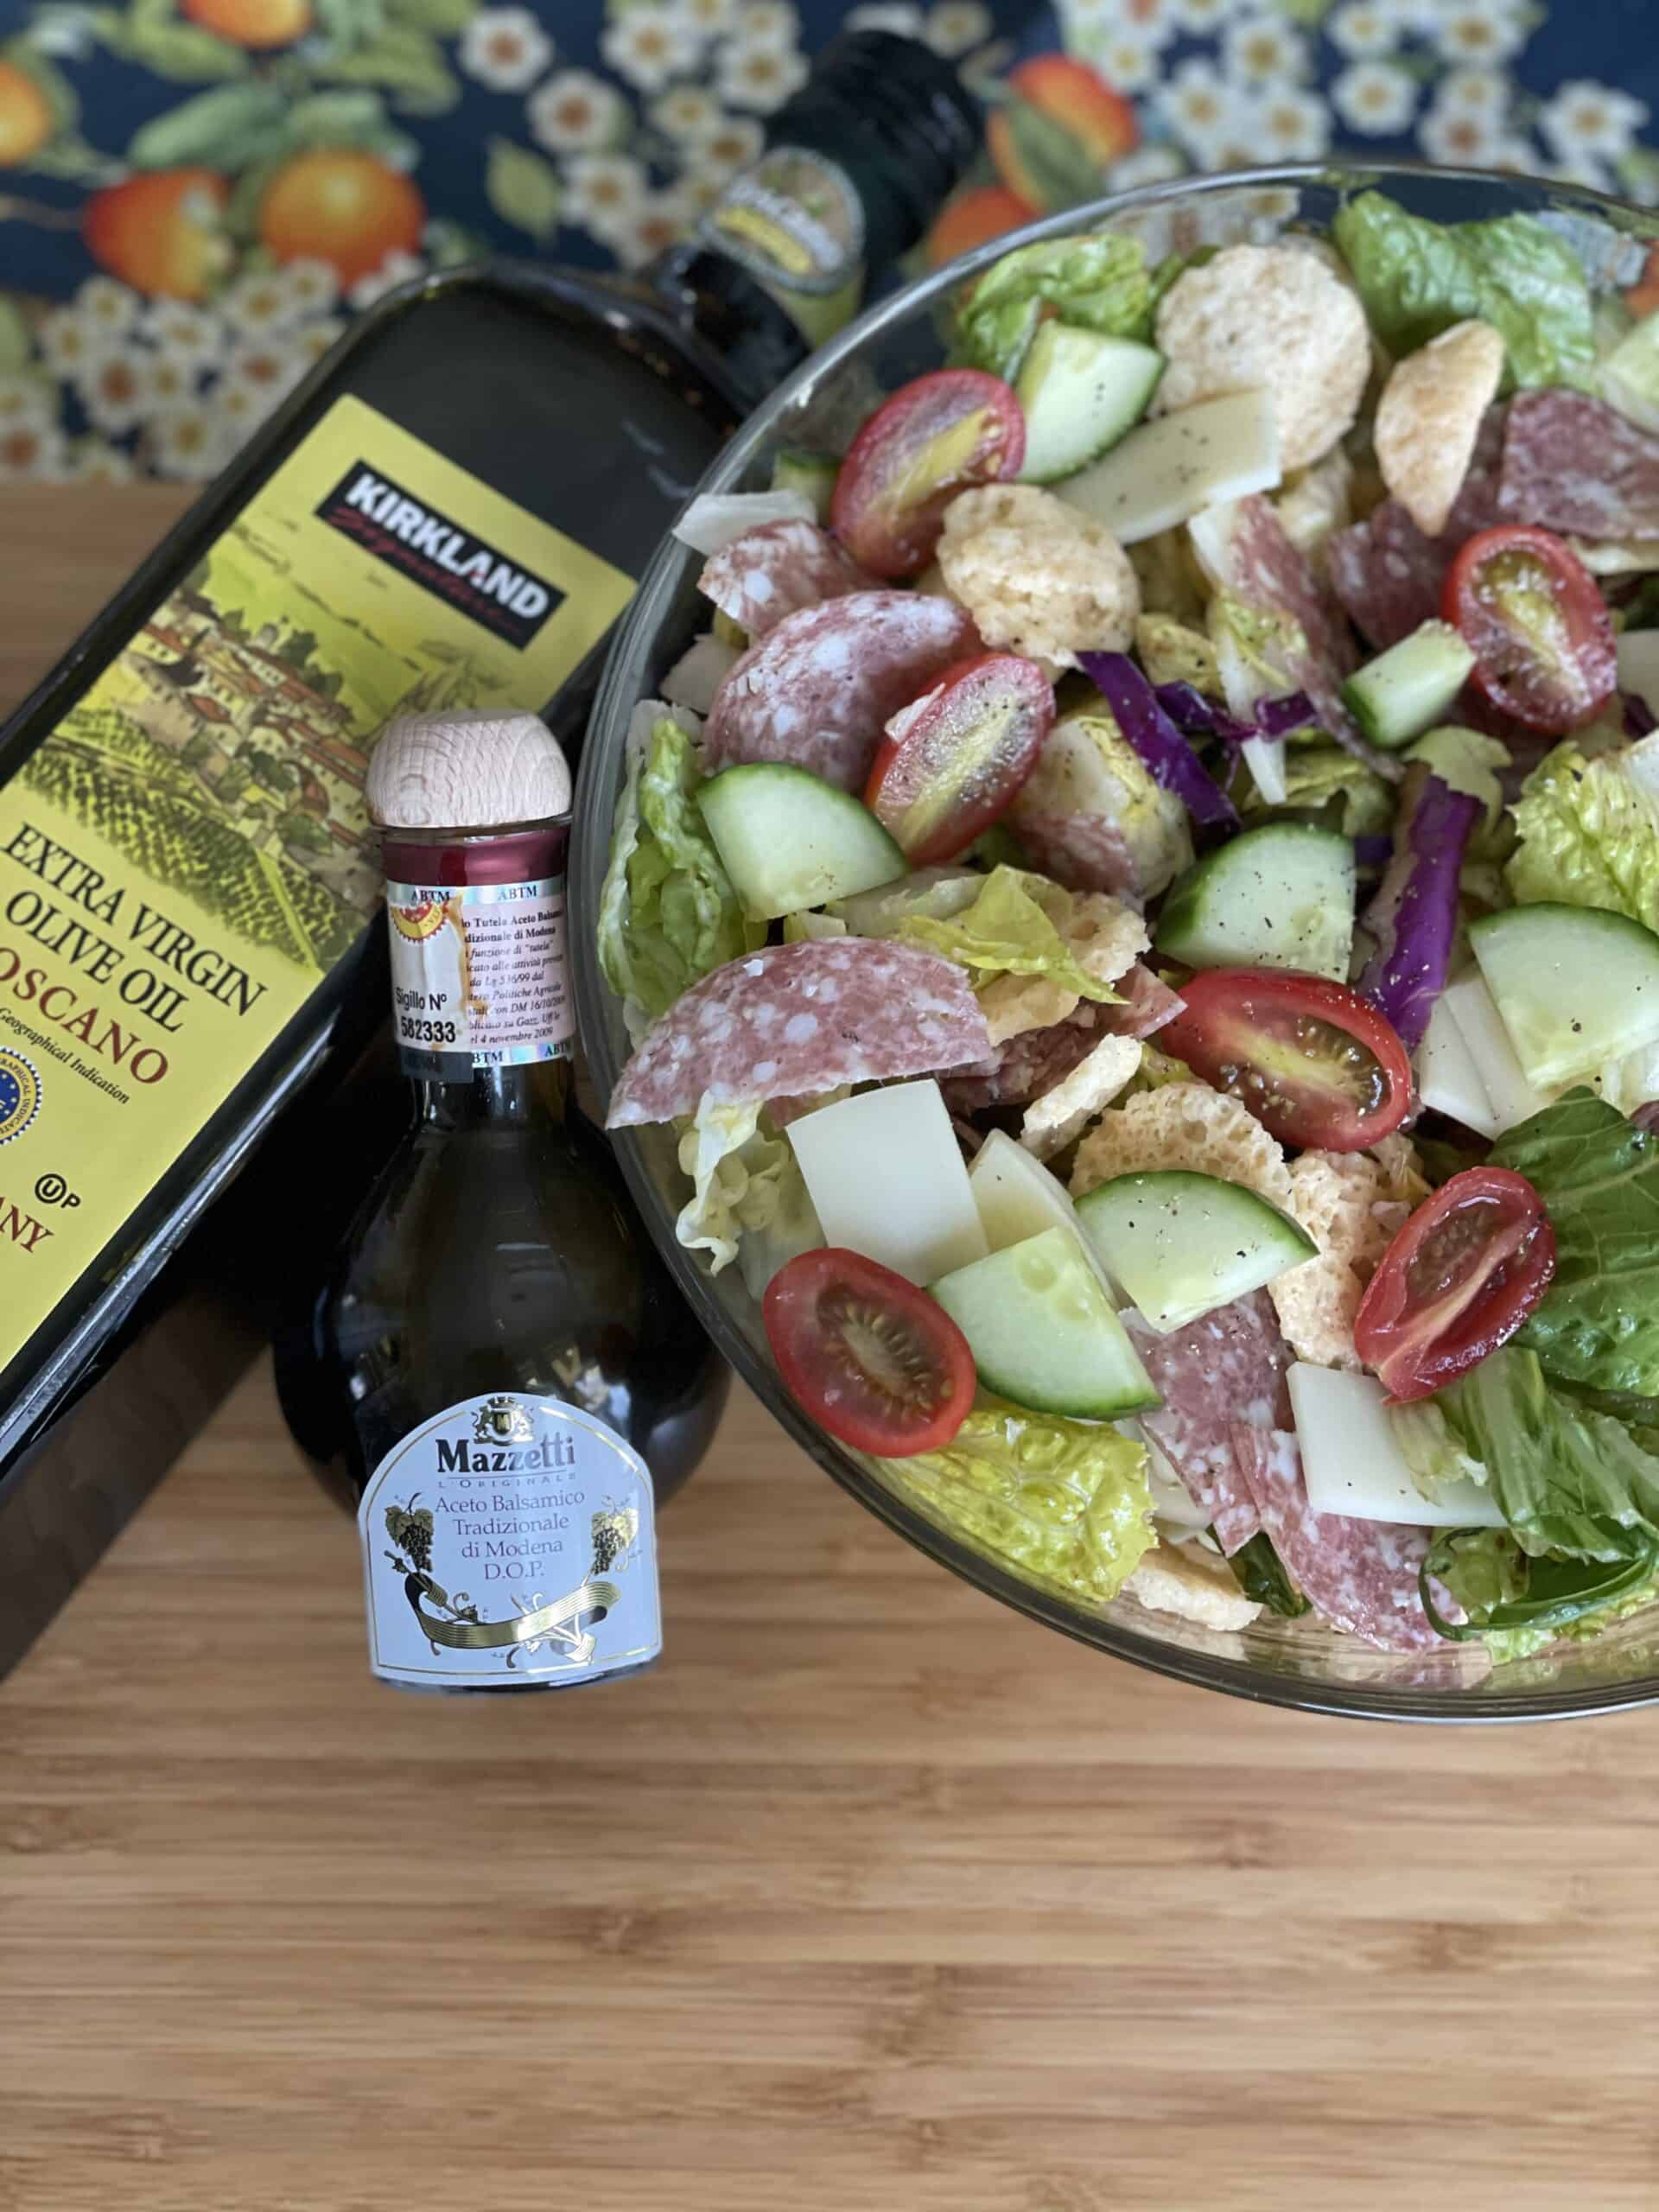 a bottle of kirkland signature olive oil marzzeti balsamic vinegar and a large bowl of salad including lettuce salami cucumber tomato and cheese